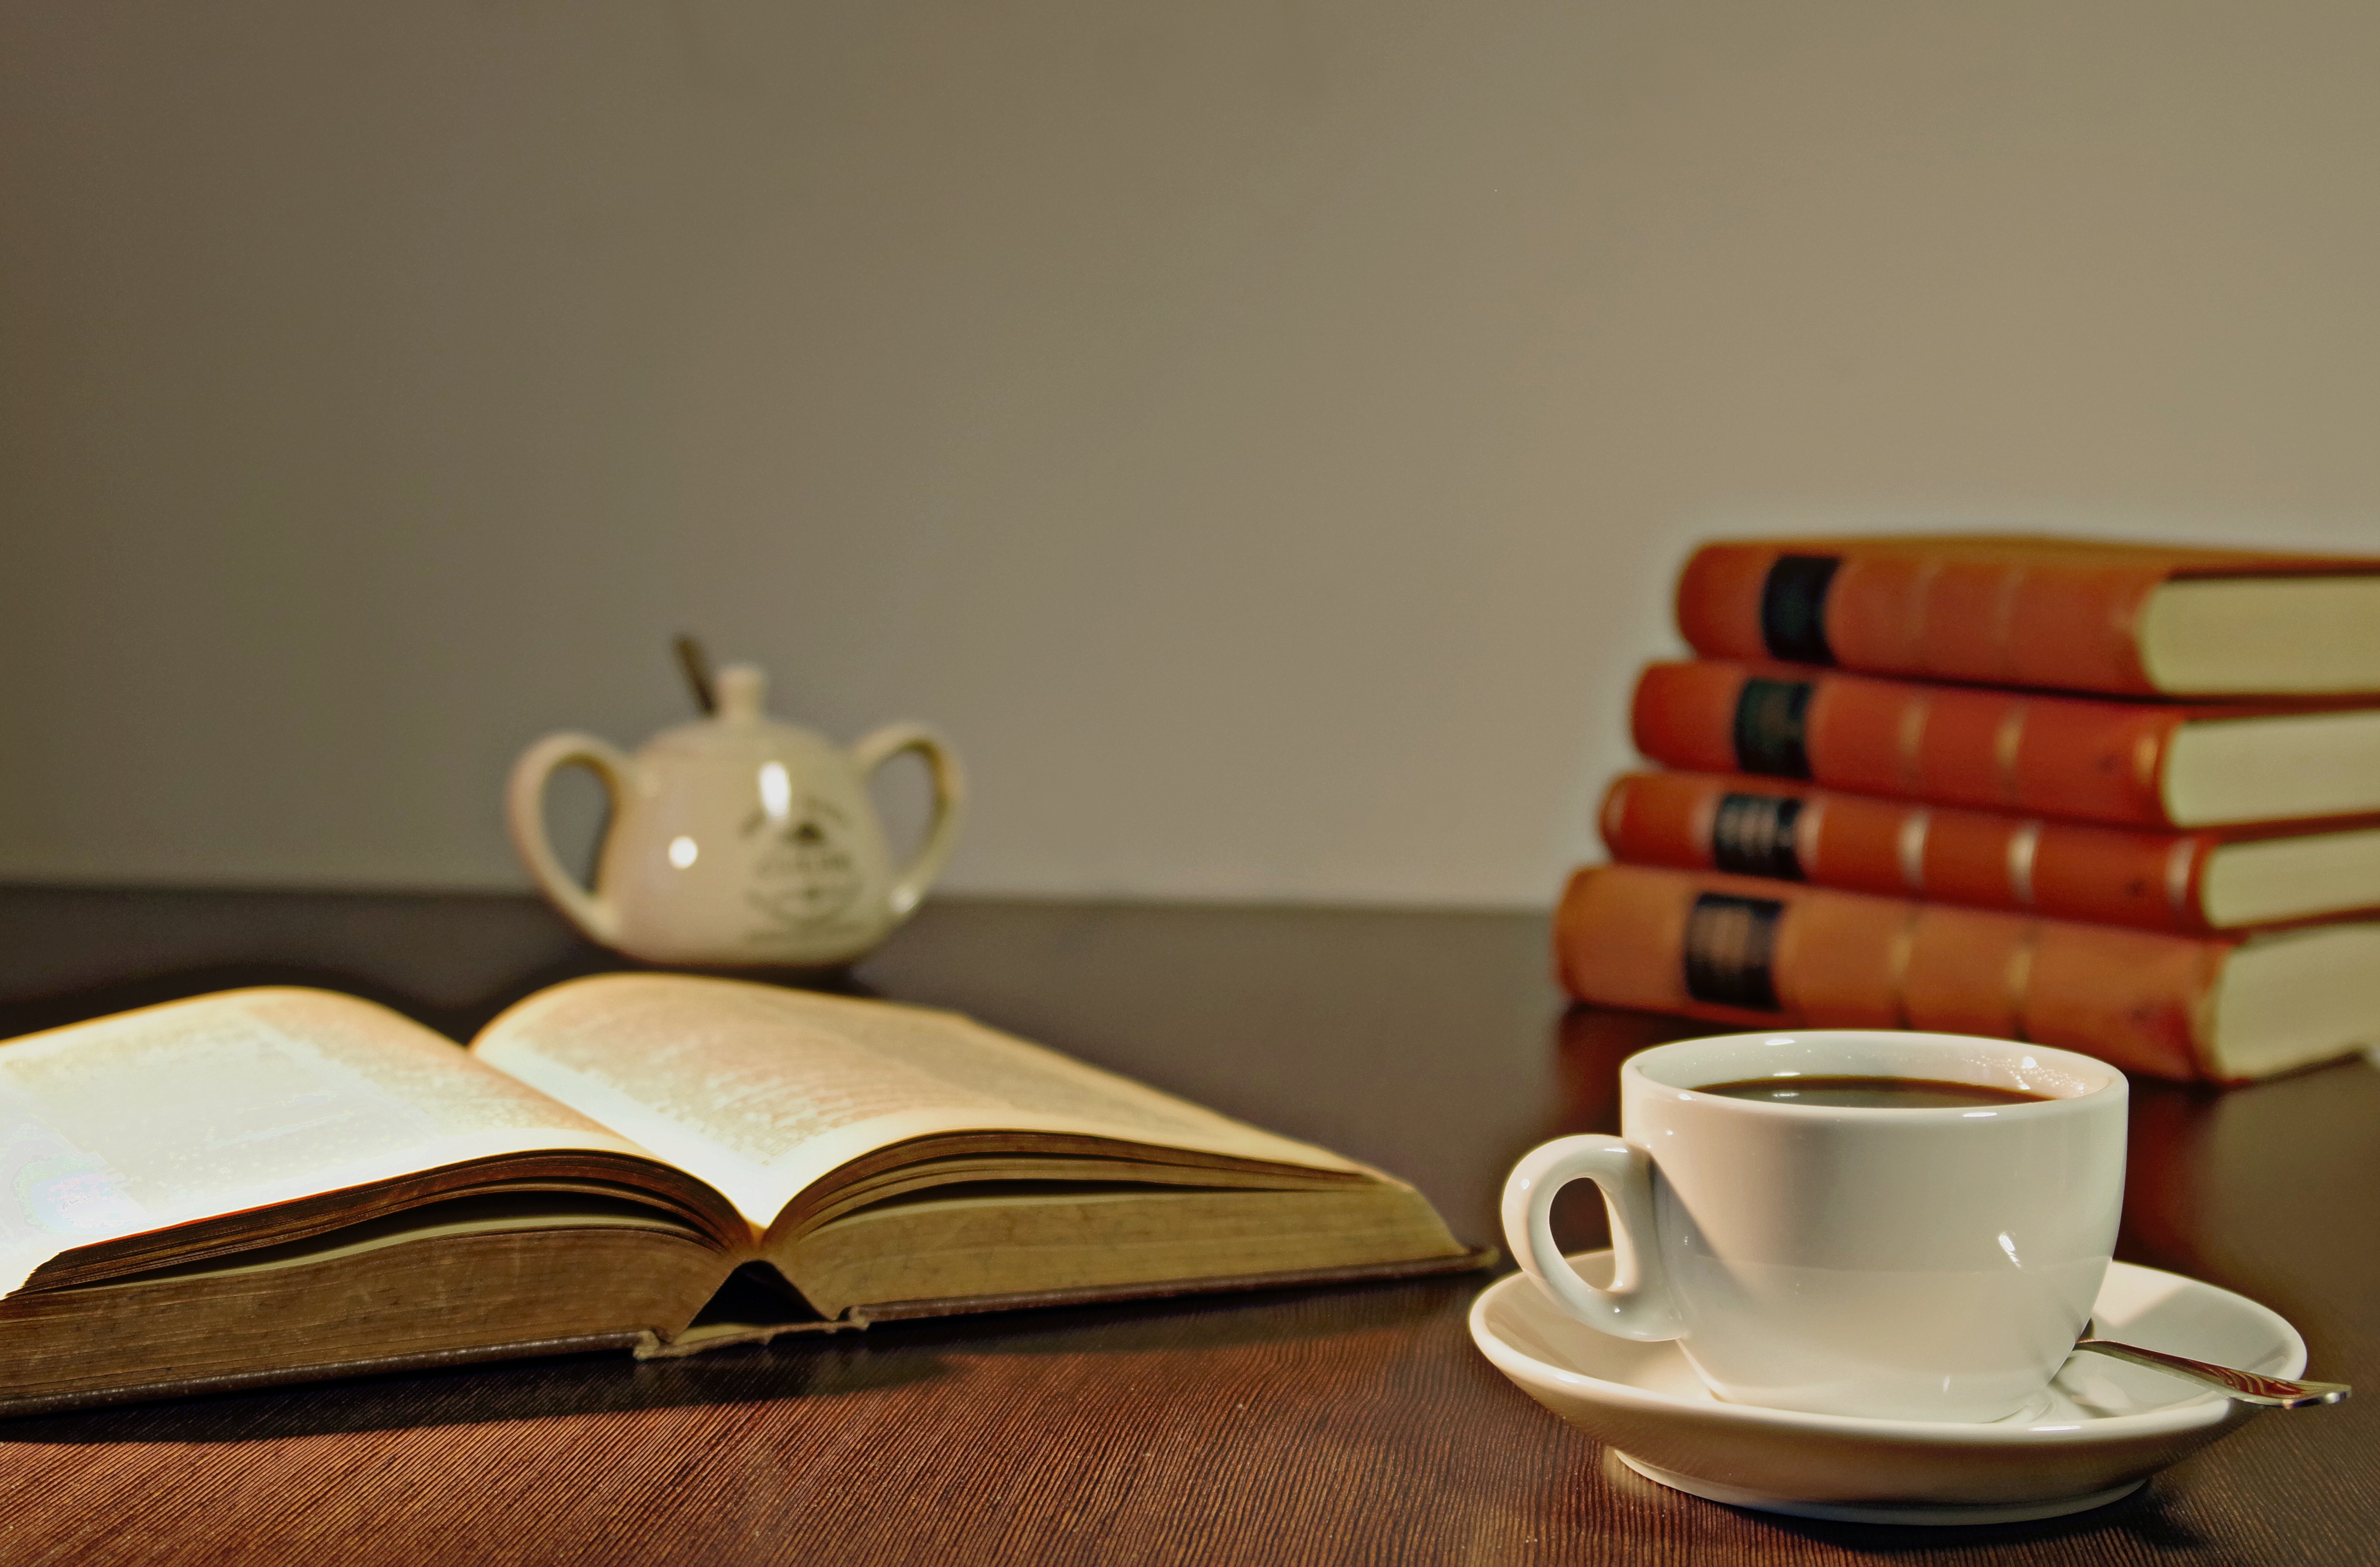 White ceramic teacup on brown wooden table beside book free free download geotapseo Gallery